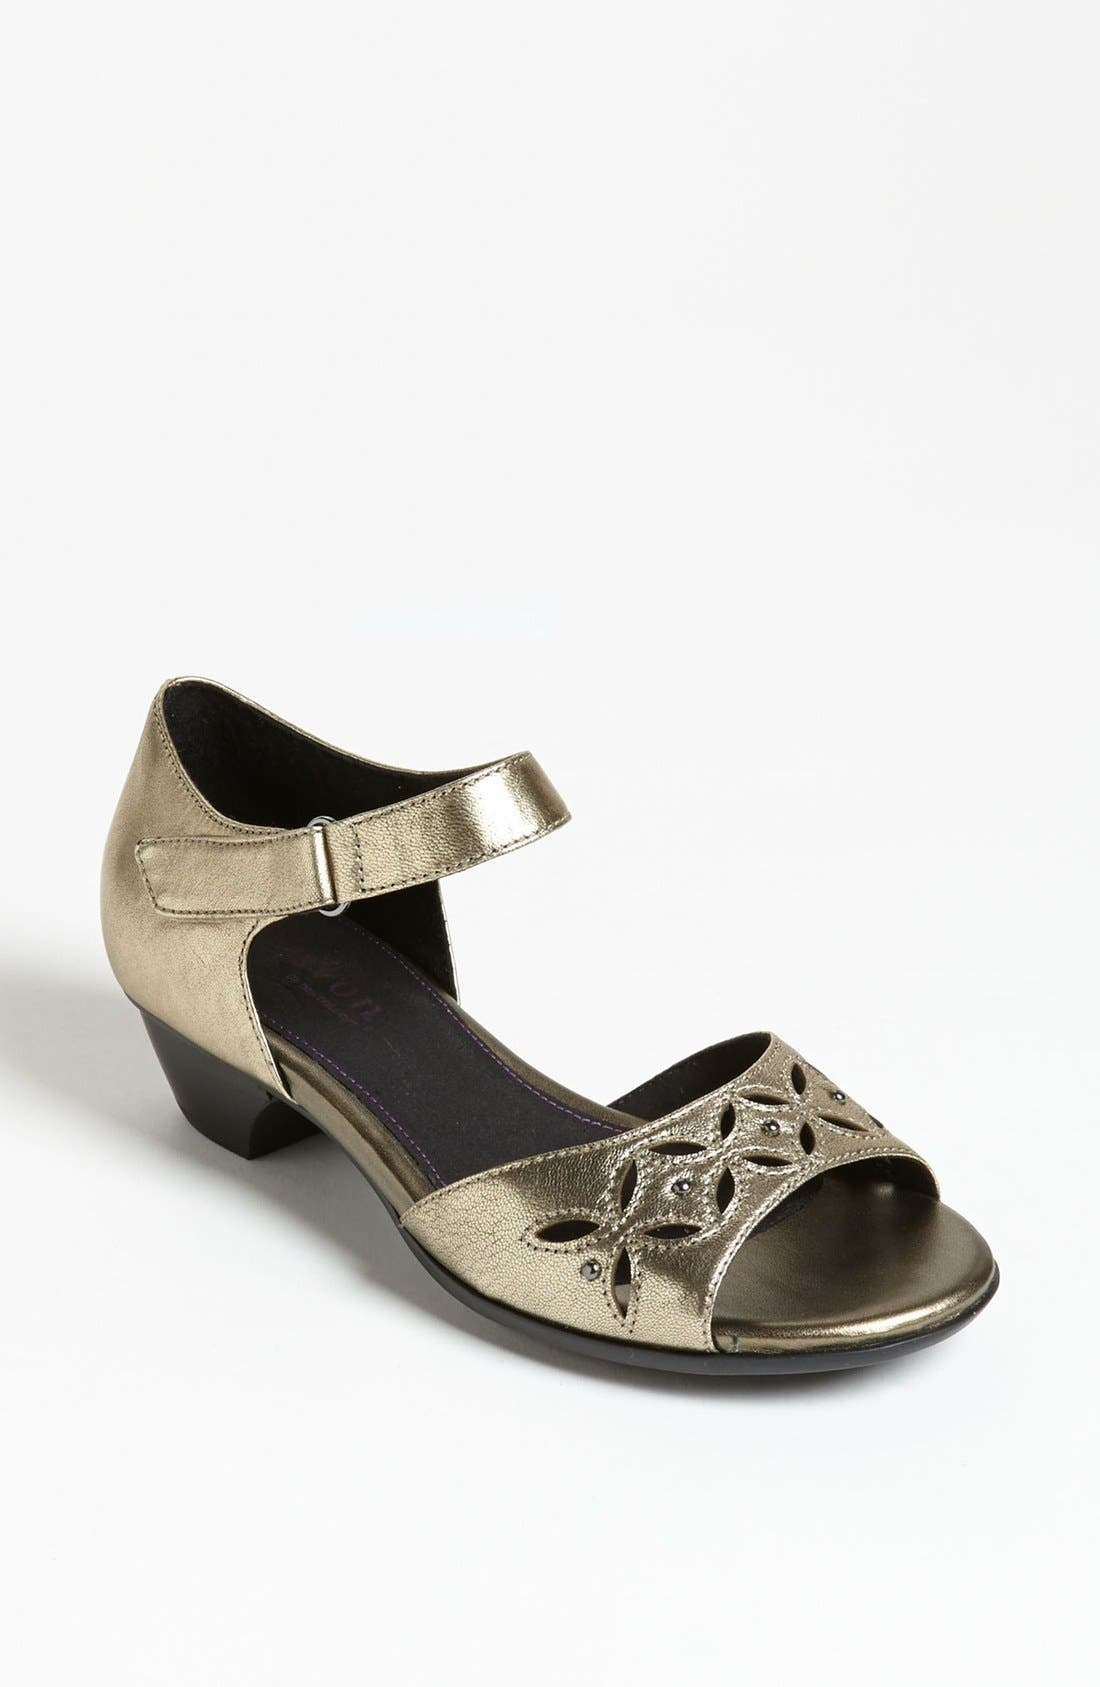 Alternate Image 1 Selected - Aravon 'Sofia' Sandal